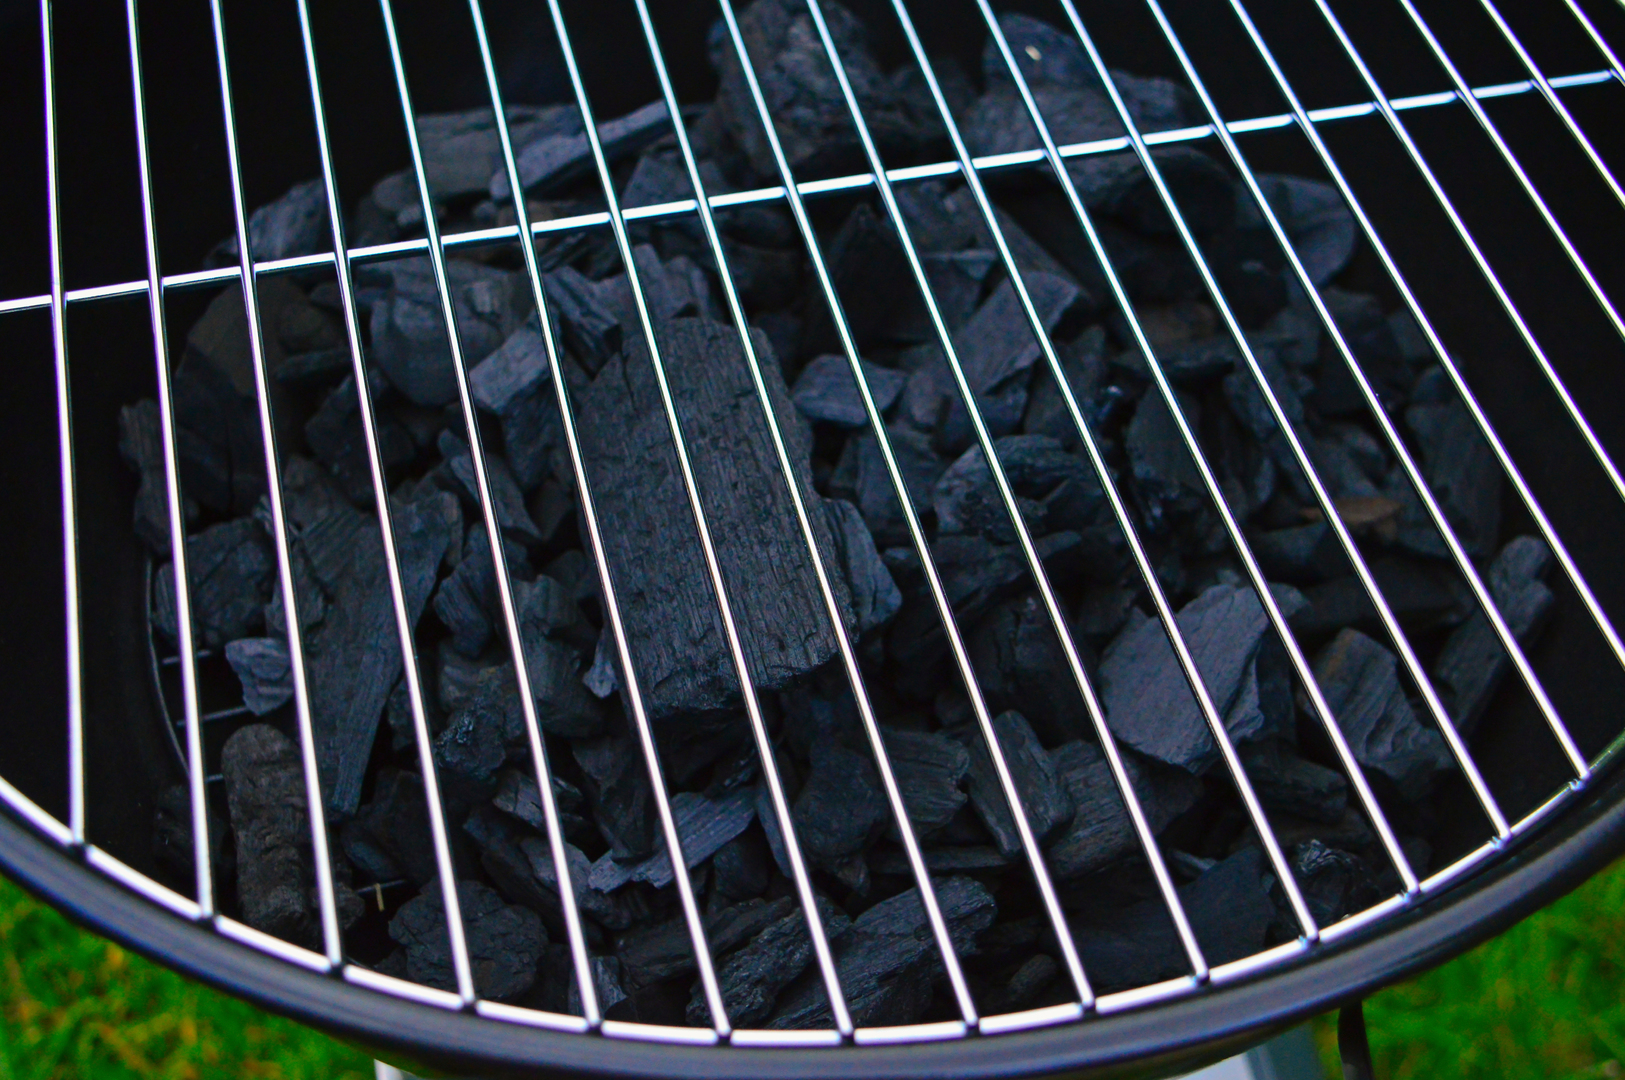 Grill barbecue fire charcoal